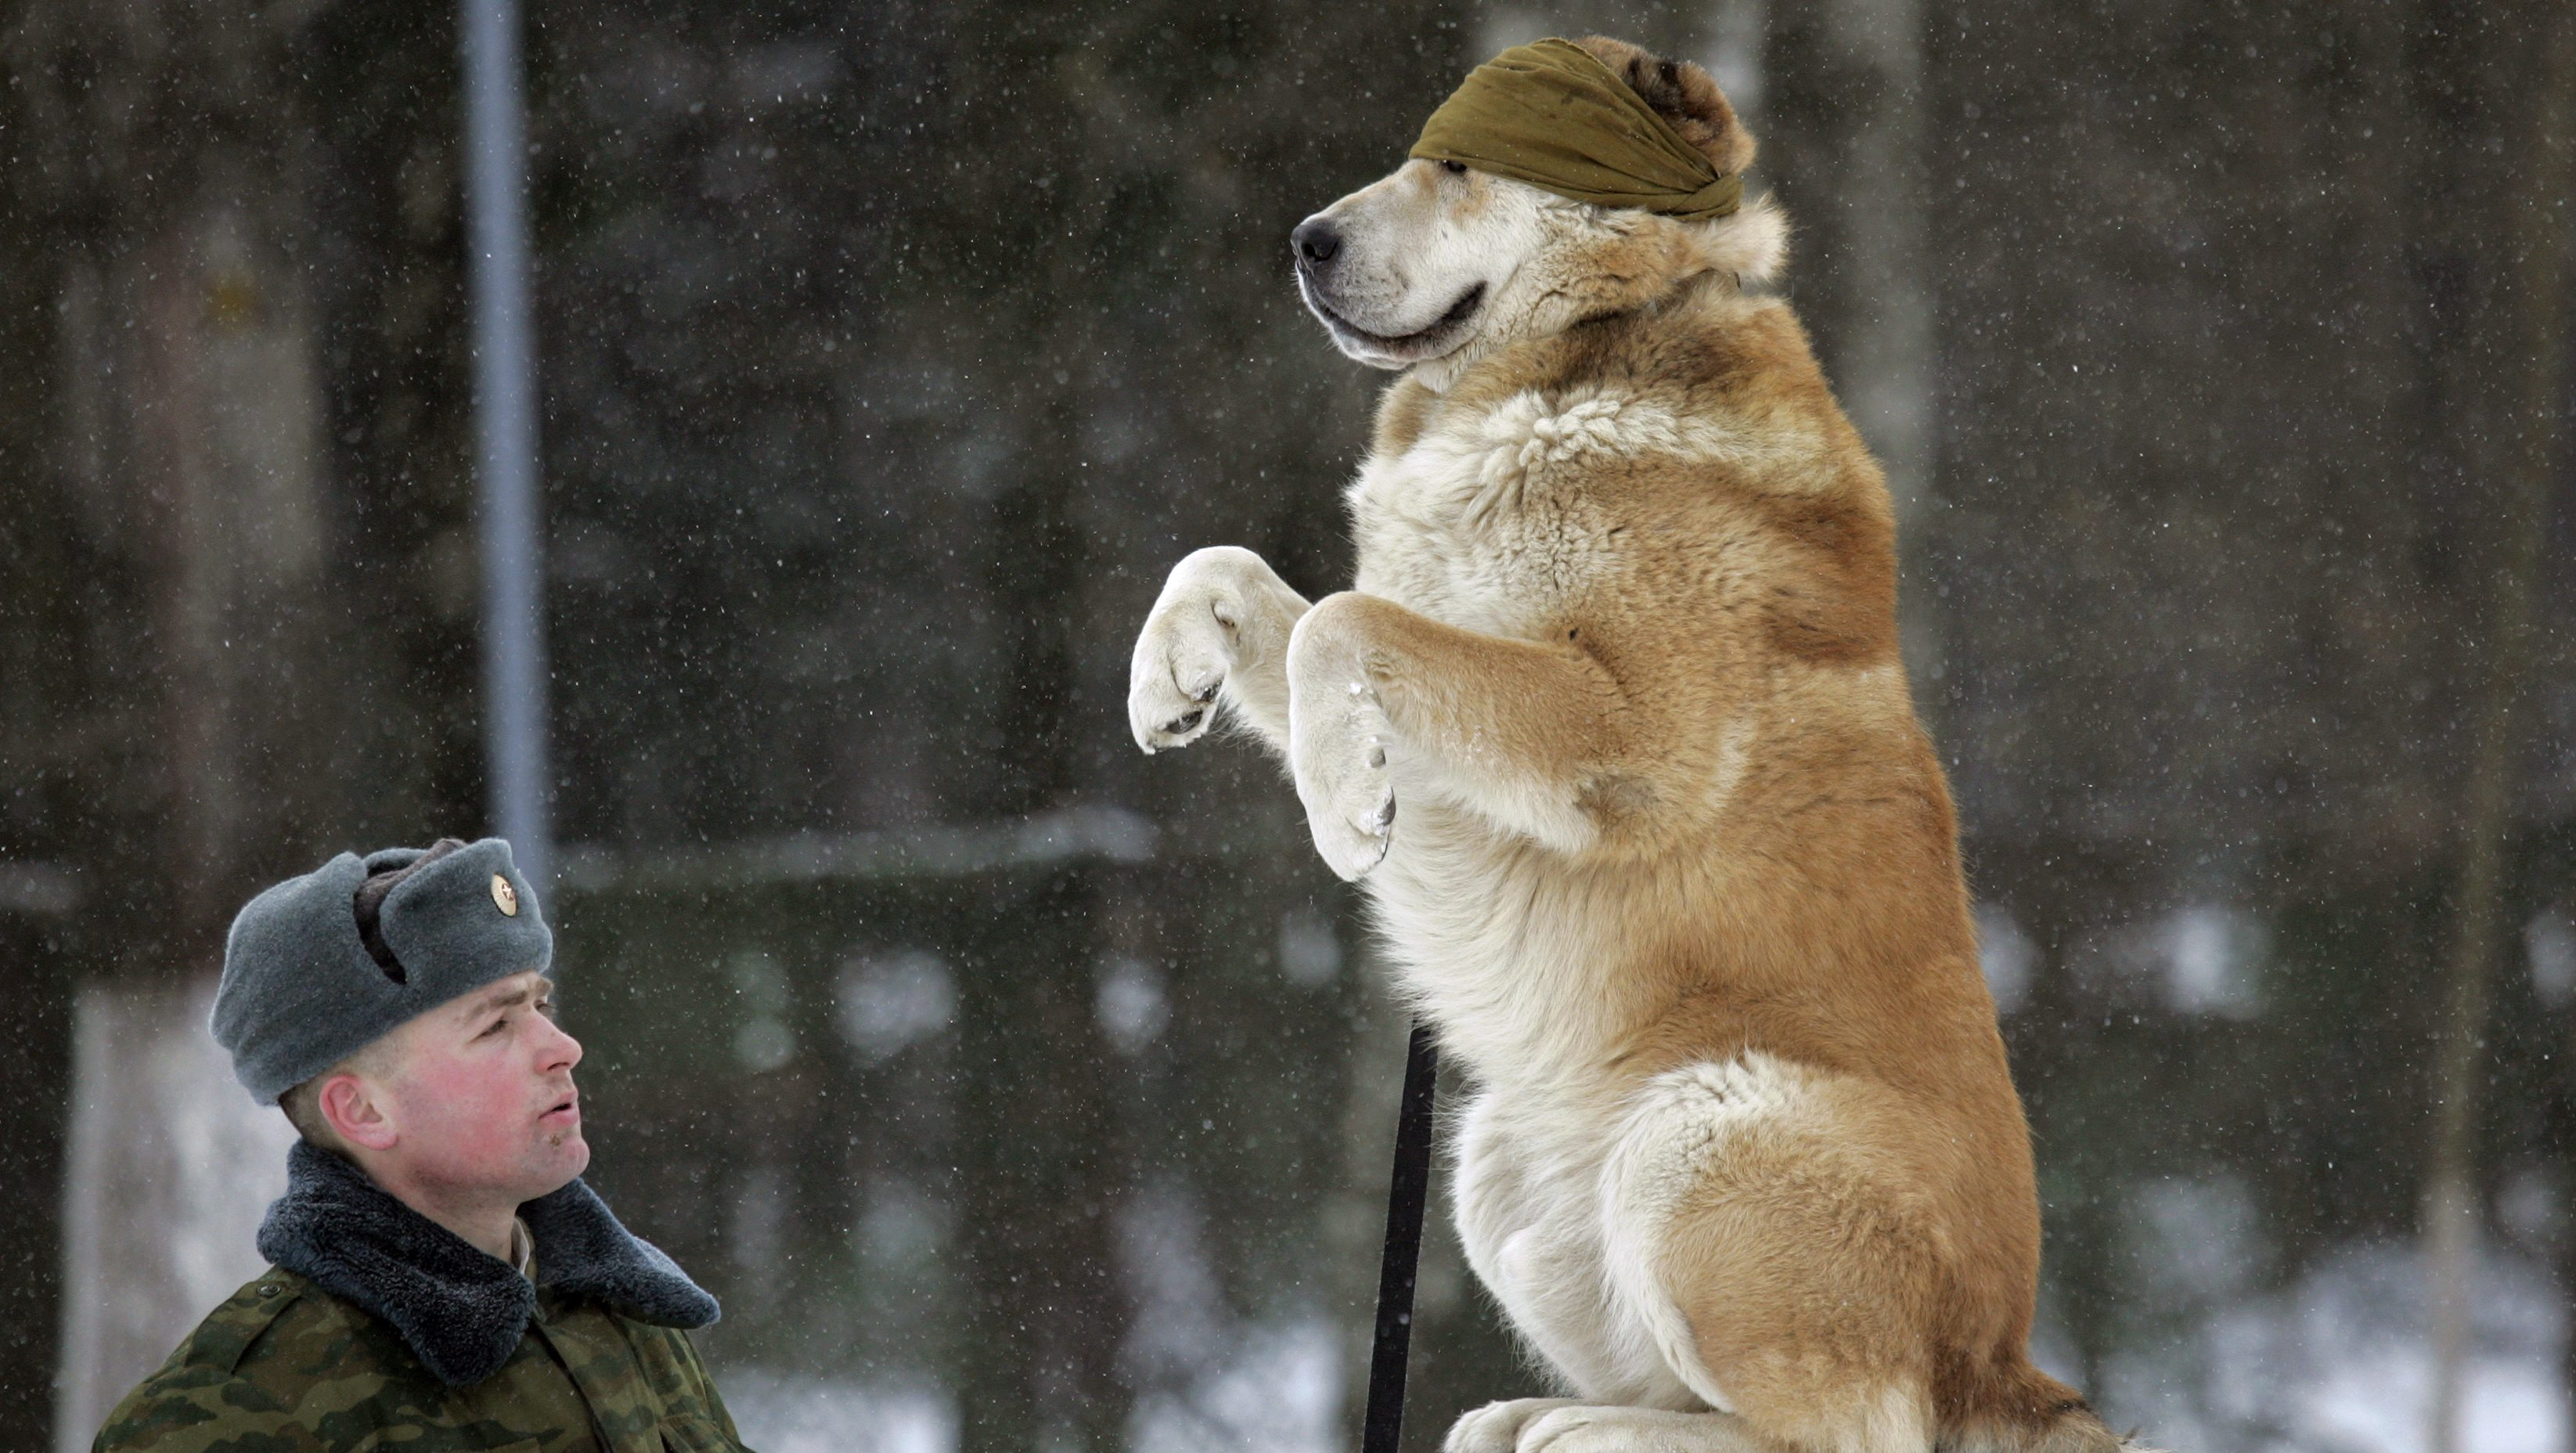 A blindfolded dog sits on a balance beam at a dog training ground of the Belarussian Defence Ministry near the village of Kolodishchi outside Minsk January 25, 2007. After completing the training the dogs will fulfill a variety of tasks in the military such as seeking explosives, mines or drugs.     REUTERS/Vasily Fedosenko (BELARUS) - RTR1LLU4